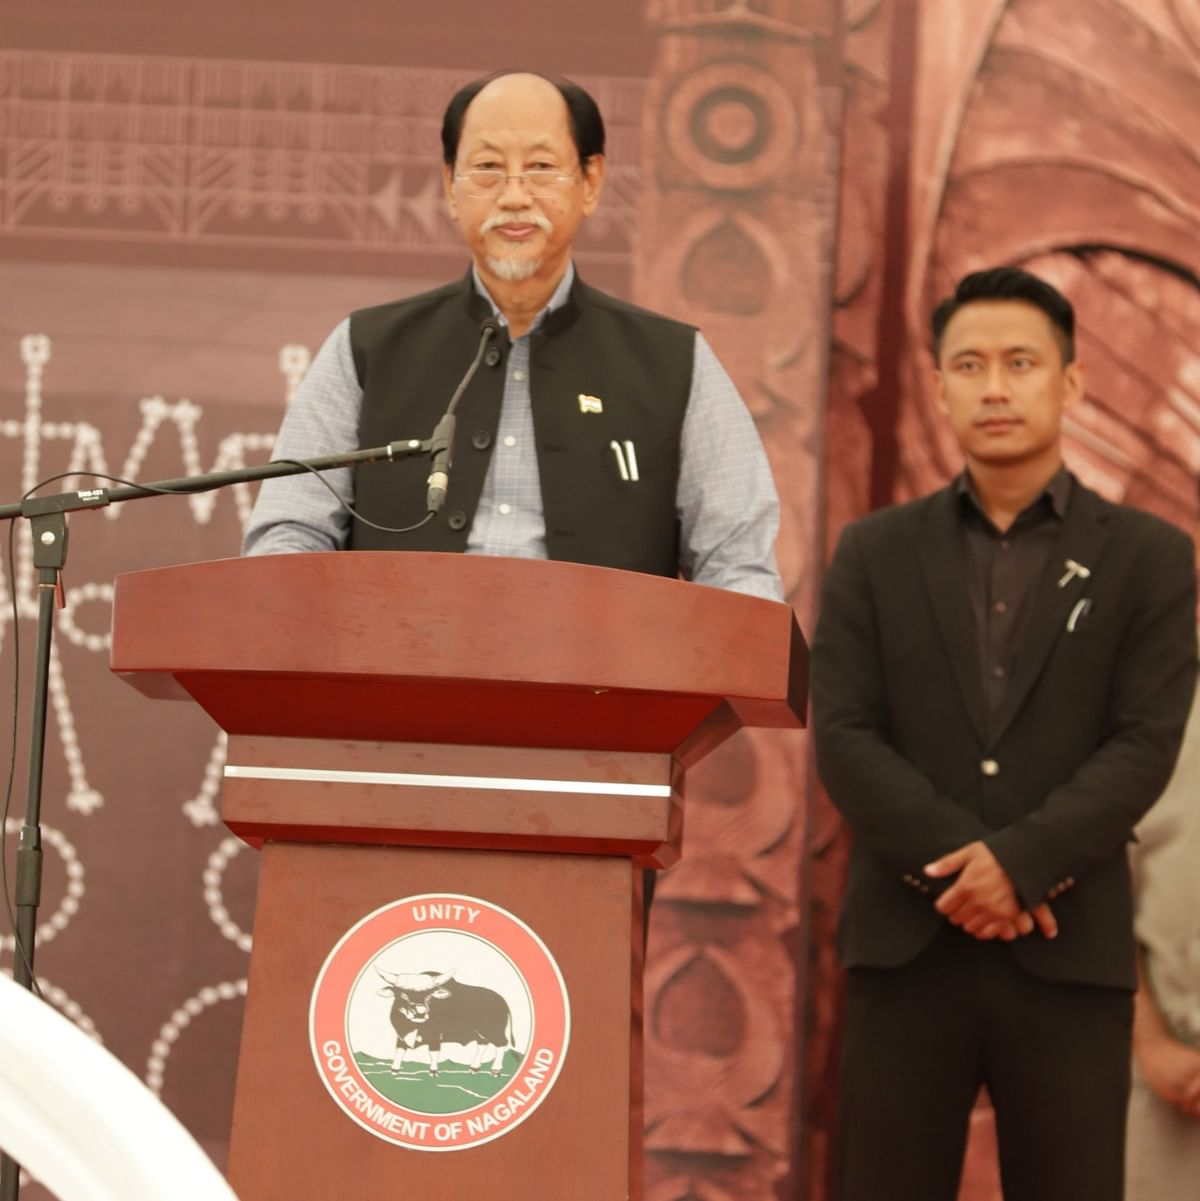 Nagaland chief minister Neiphiu Rio reiterated that 'Ravi will pave the way for a breakthrough to the Naga political issue'